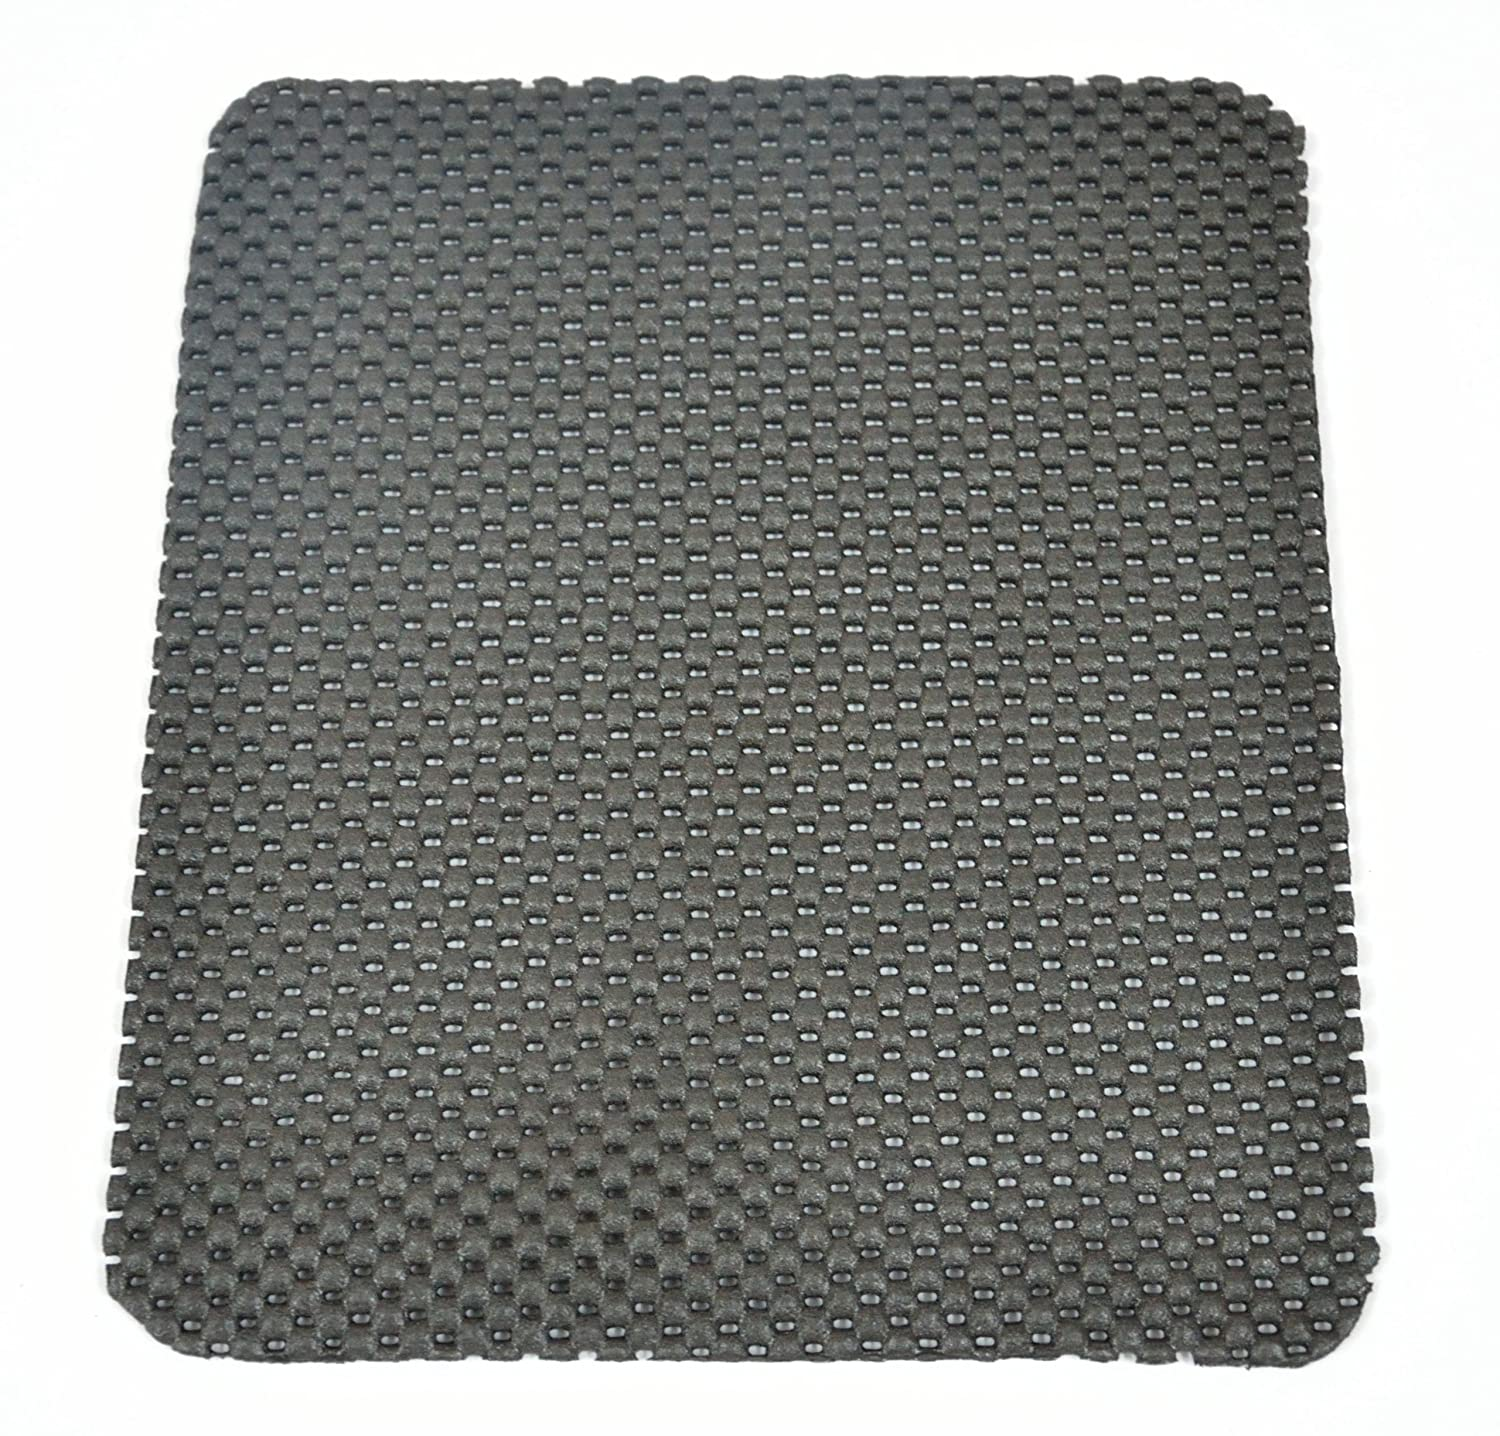 safety rubber textured slip schutzmatte granulat mats grau anti mat detail